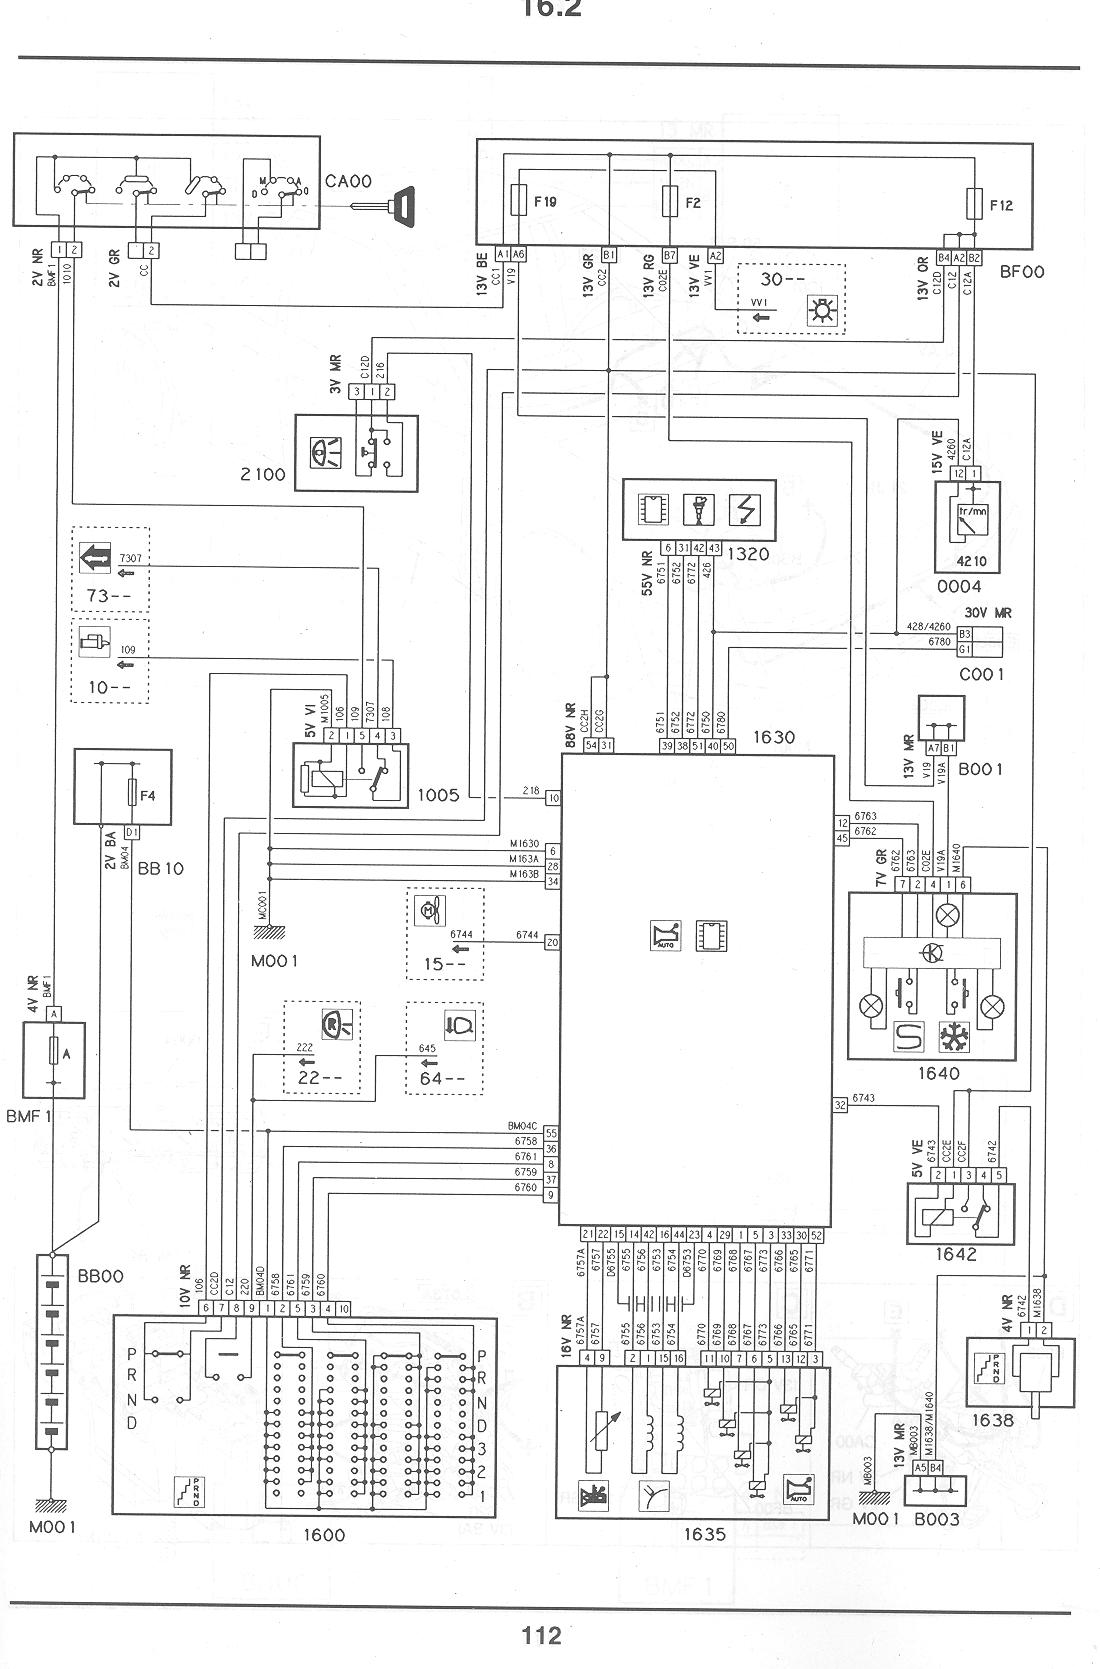 citroen c3 wiring diagram - wiring diagram and schematics citroen xsara fuse box diagram free 1999 citroen saxo fuse box diagram